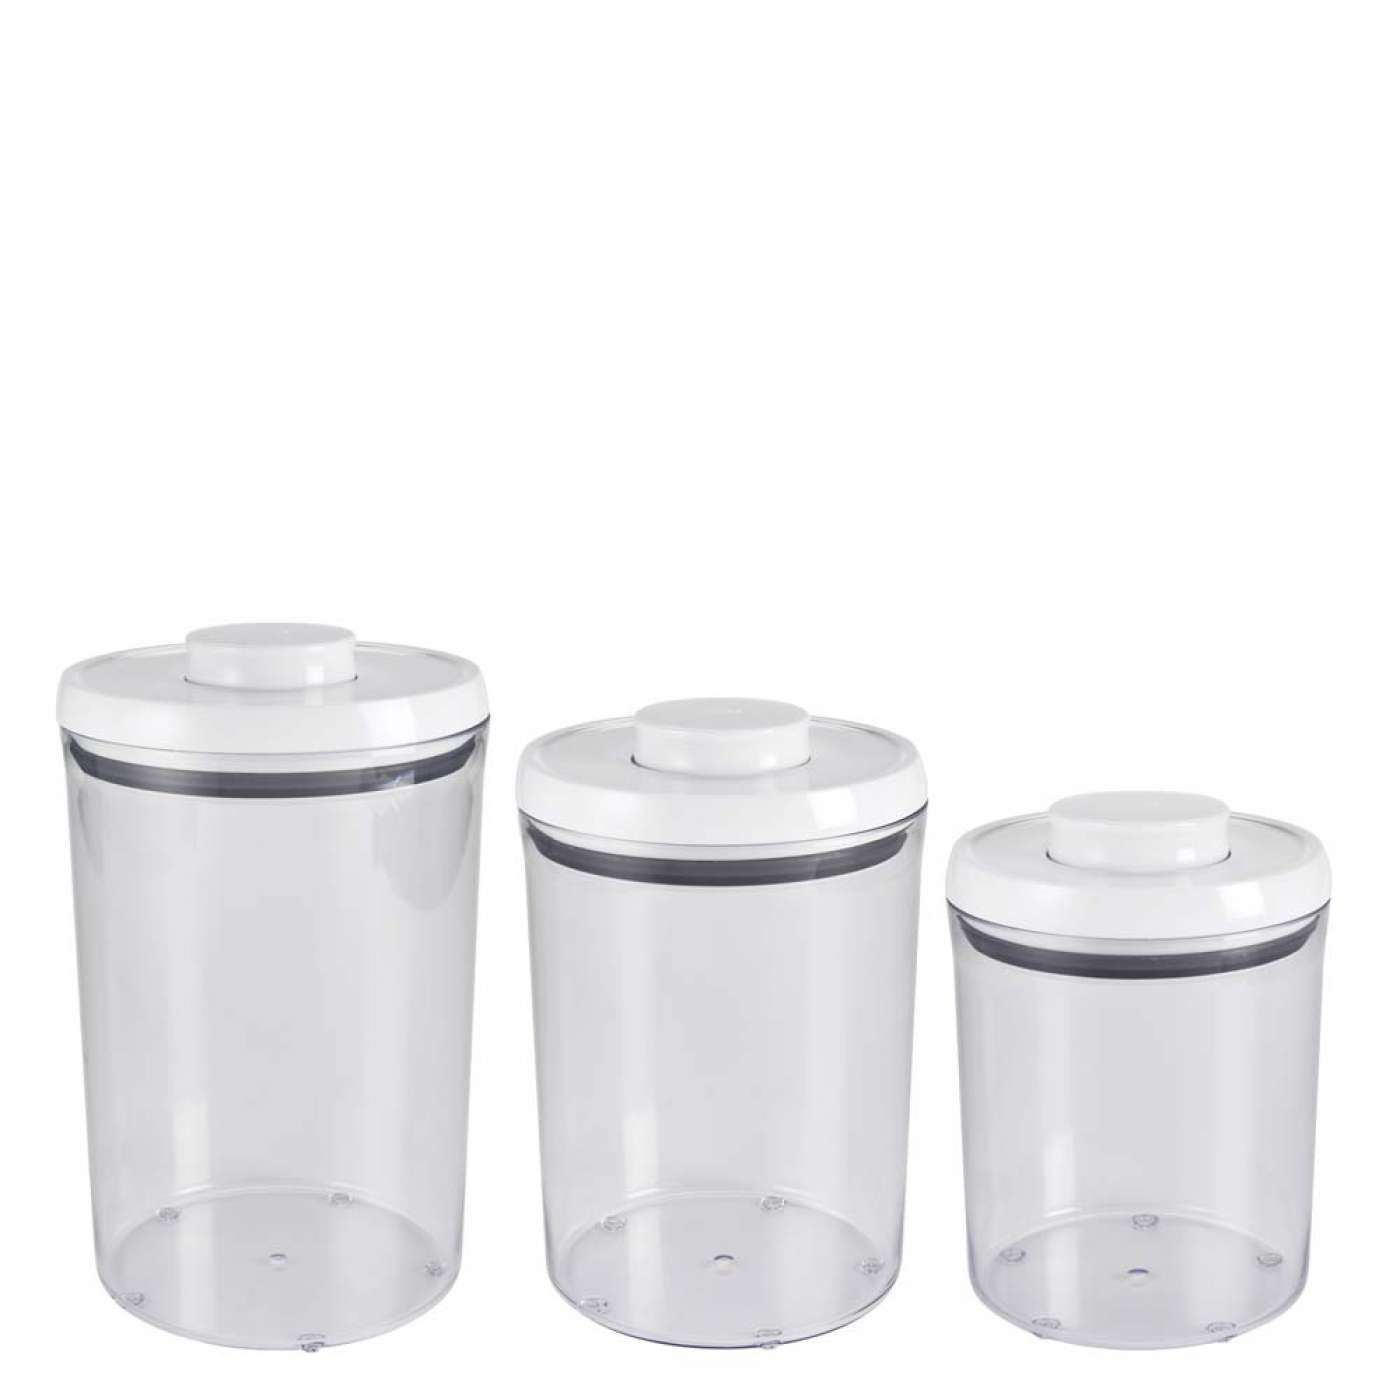 4 Qt Large Holds 1 Bag Flour 3 Piece Pop Round Canister Set Oxo Canister Sets Food Storage Containers Good Grips